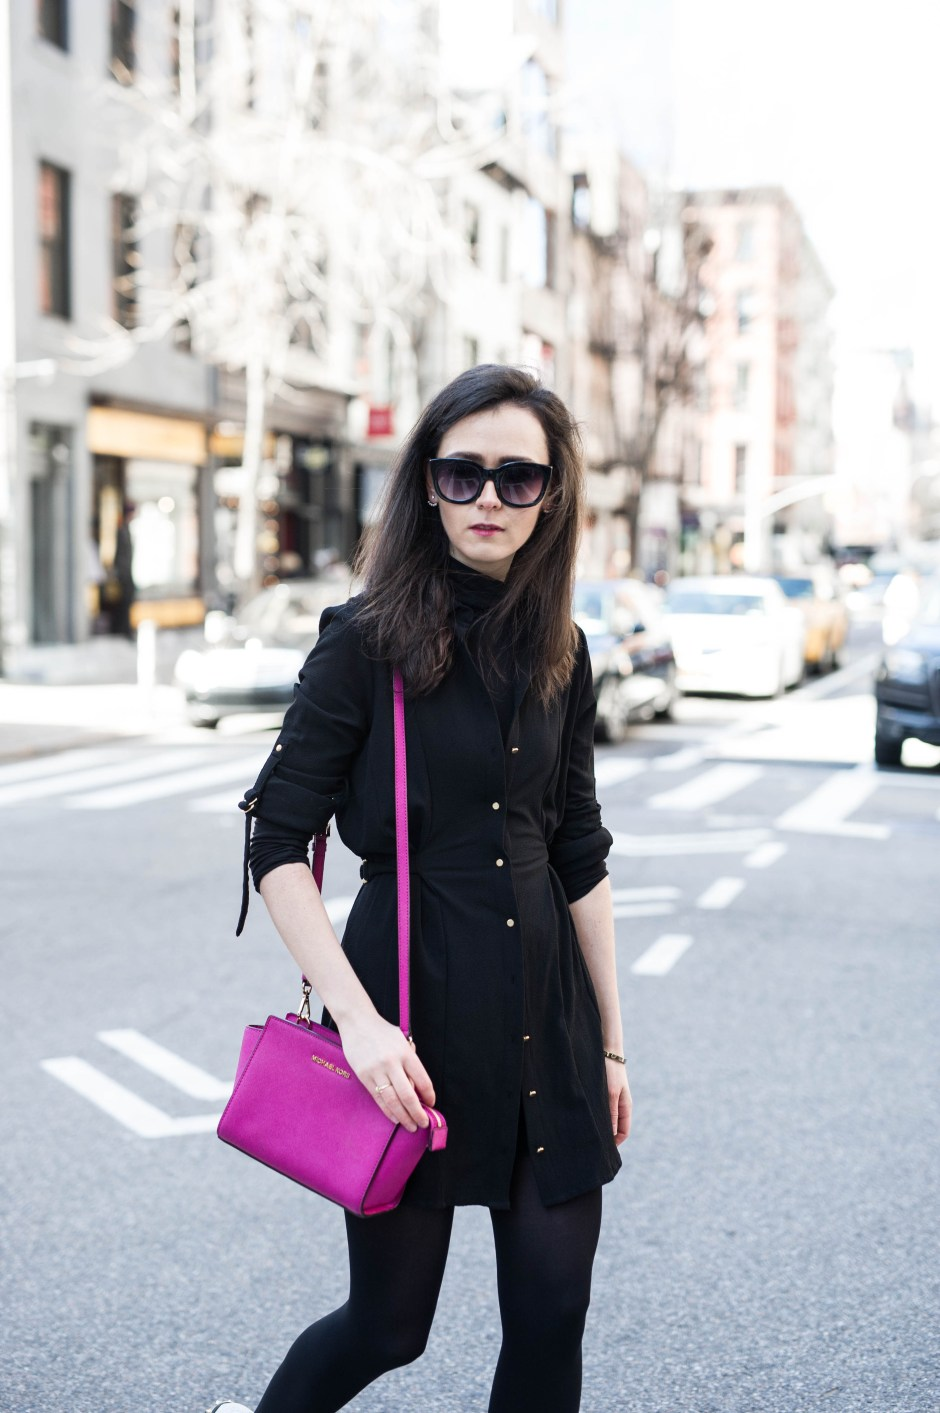 Irish Fashion: Black Shirt Dress